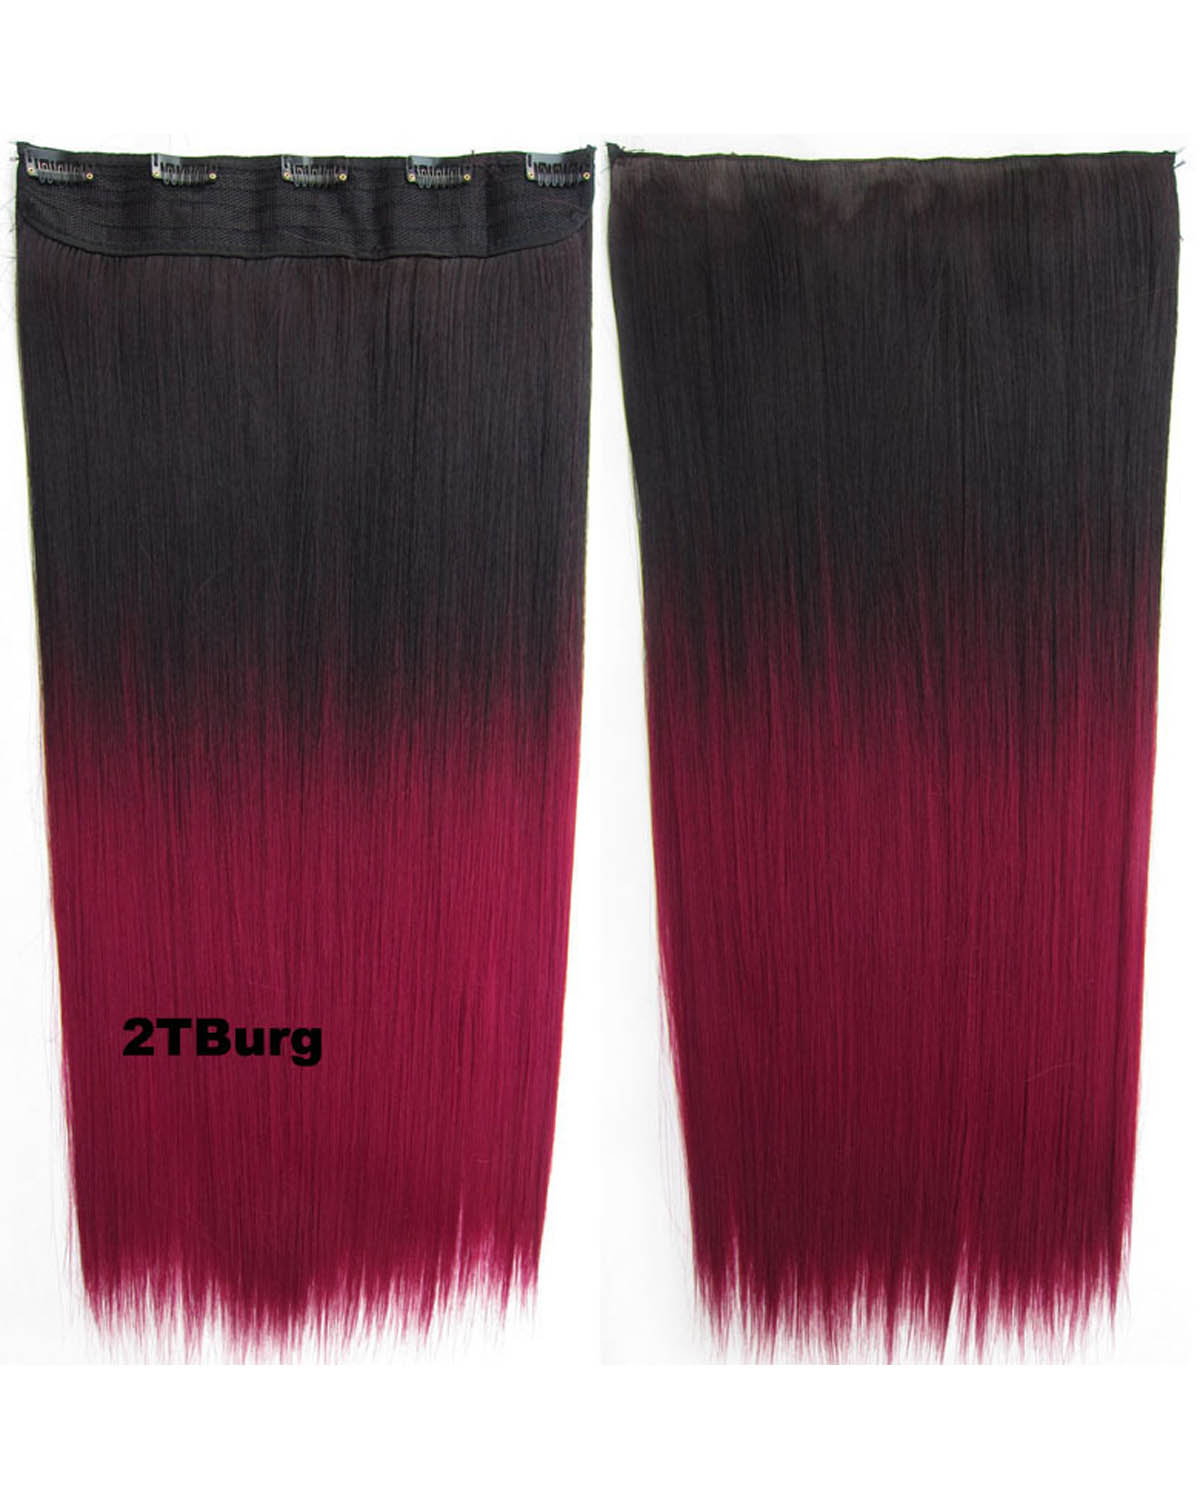 24 Inch Female Long and Straight Hot-Sale One Piece 5 Clips Clip in Synthetic Hair Extension Ombre 2TBurg